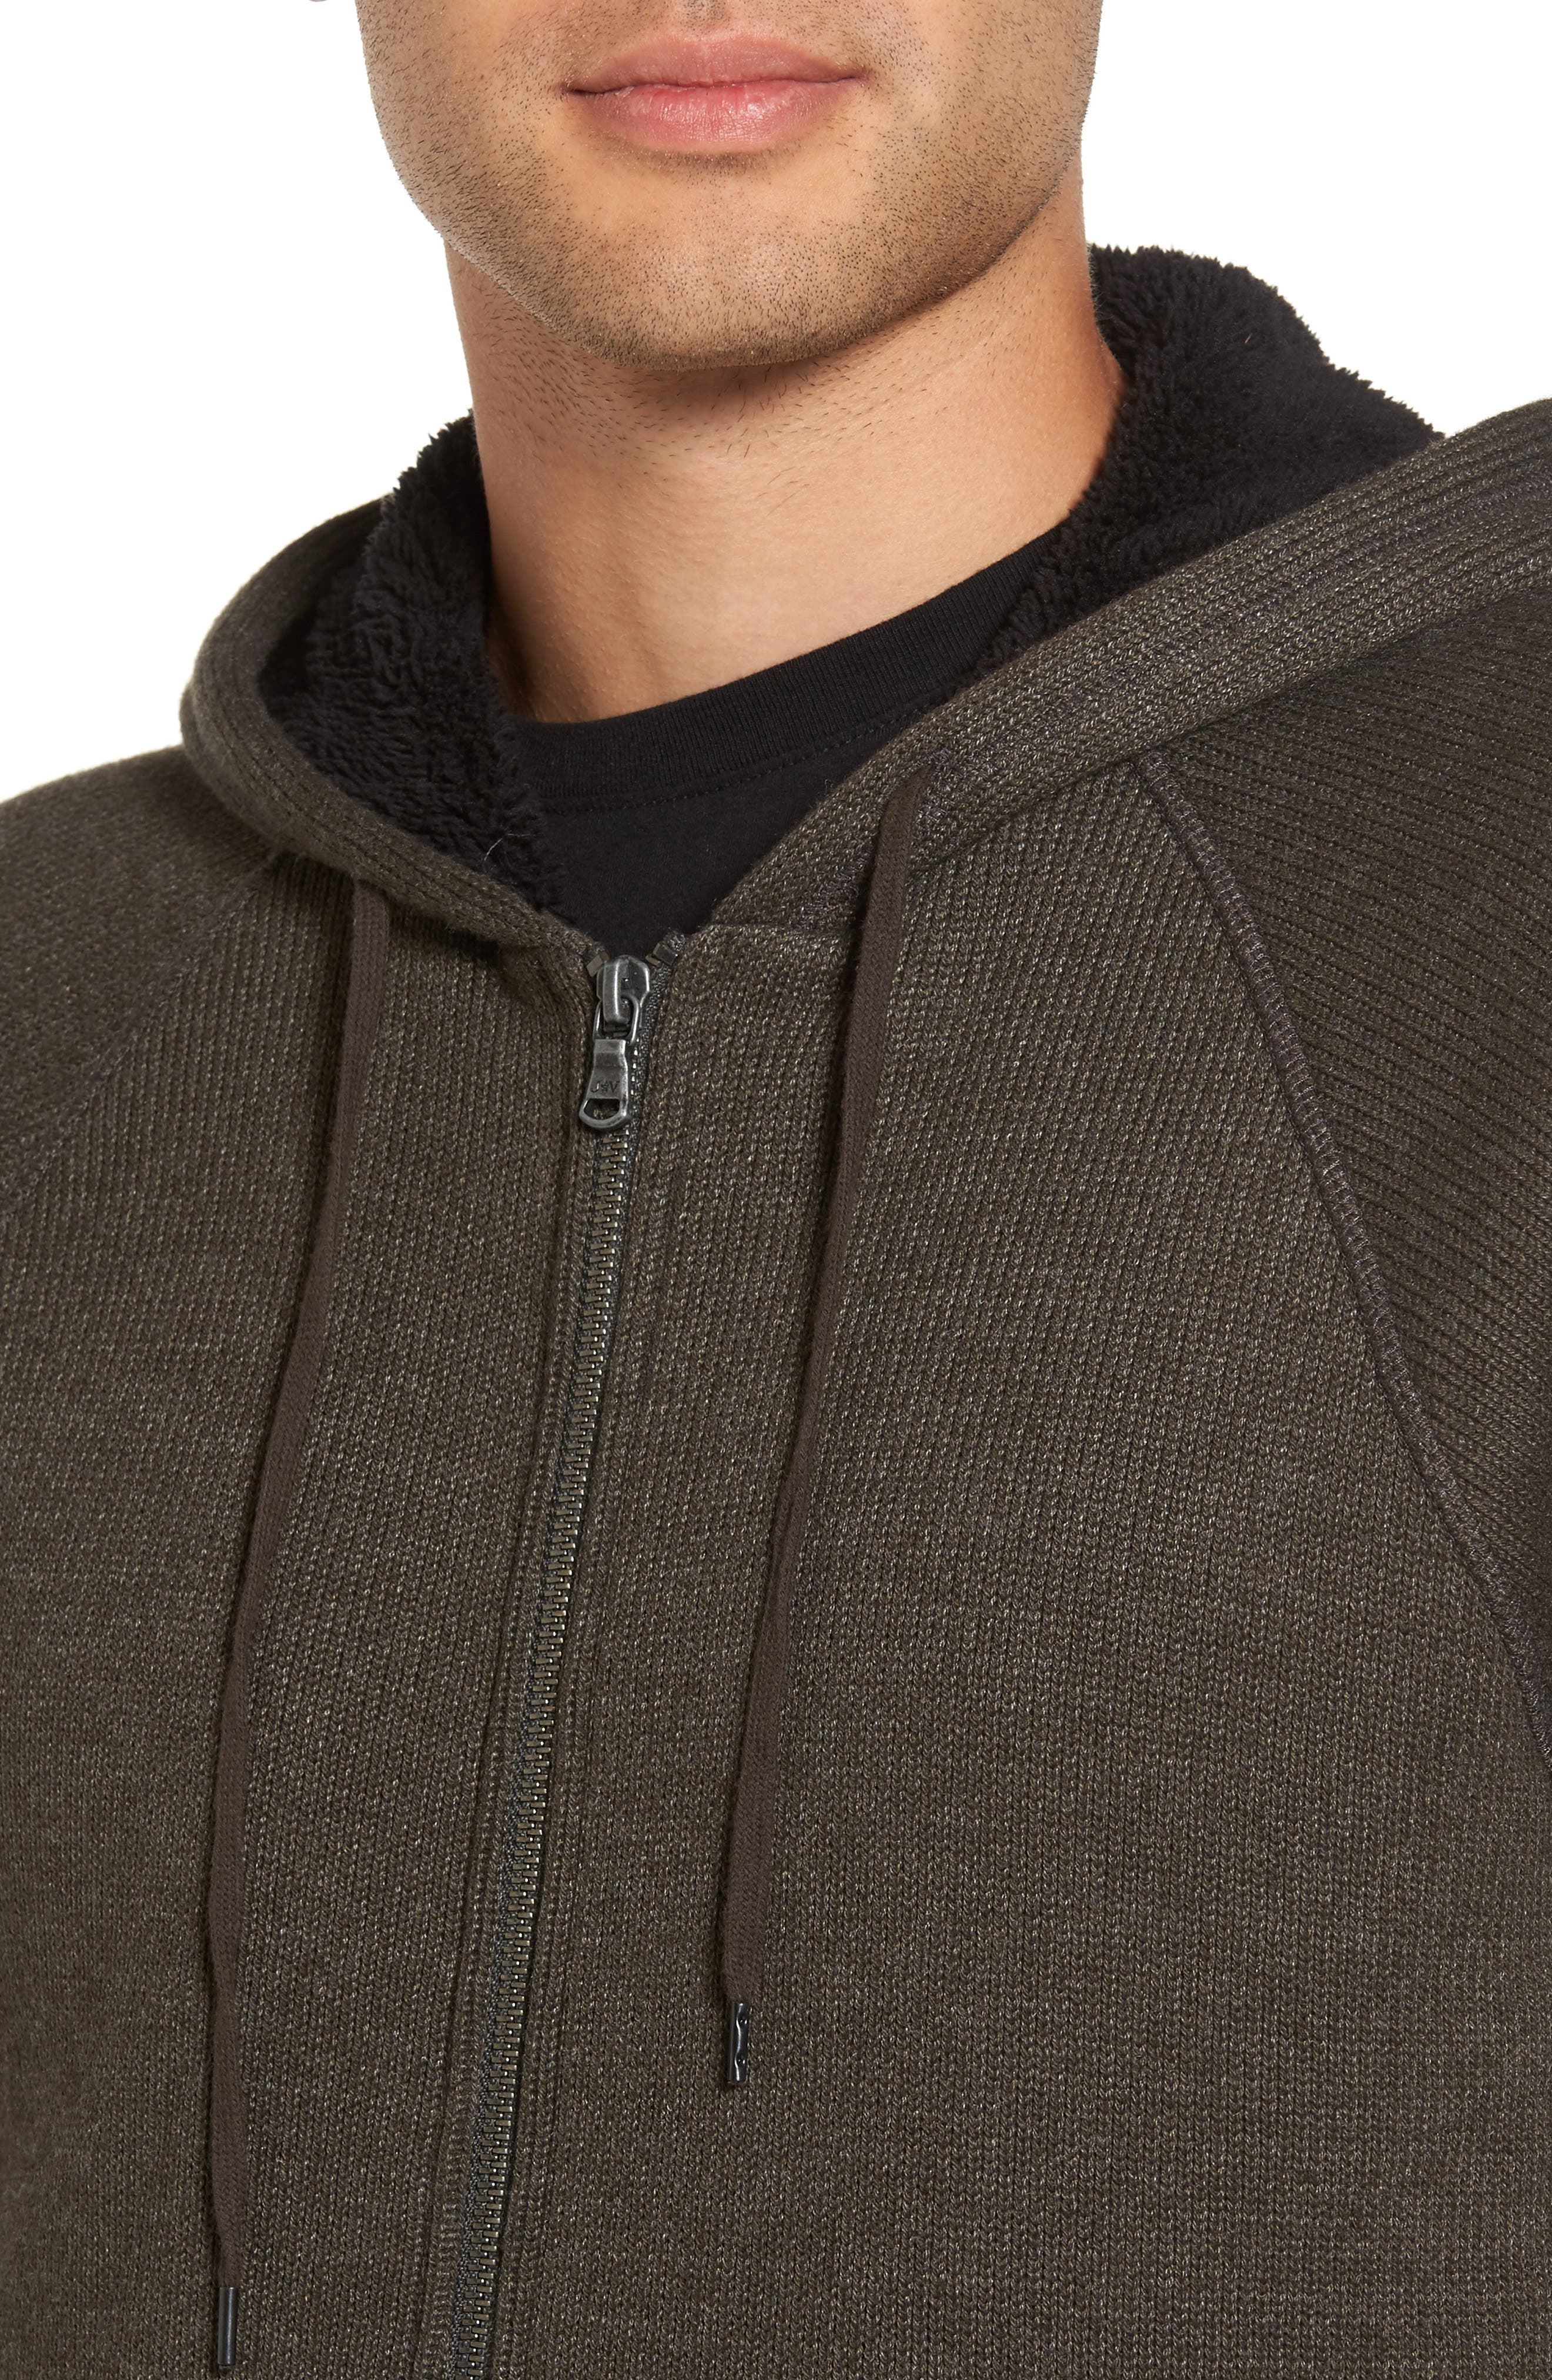 Fleece Lined Zip Hoodie,                             Alternate thumbnail 4, color,                             Olive Branch